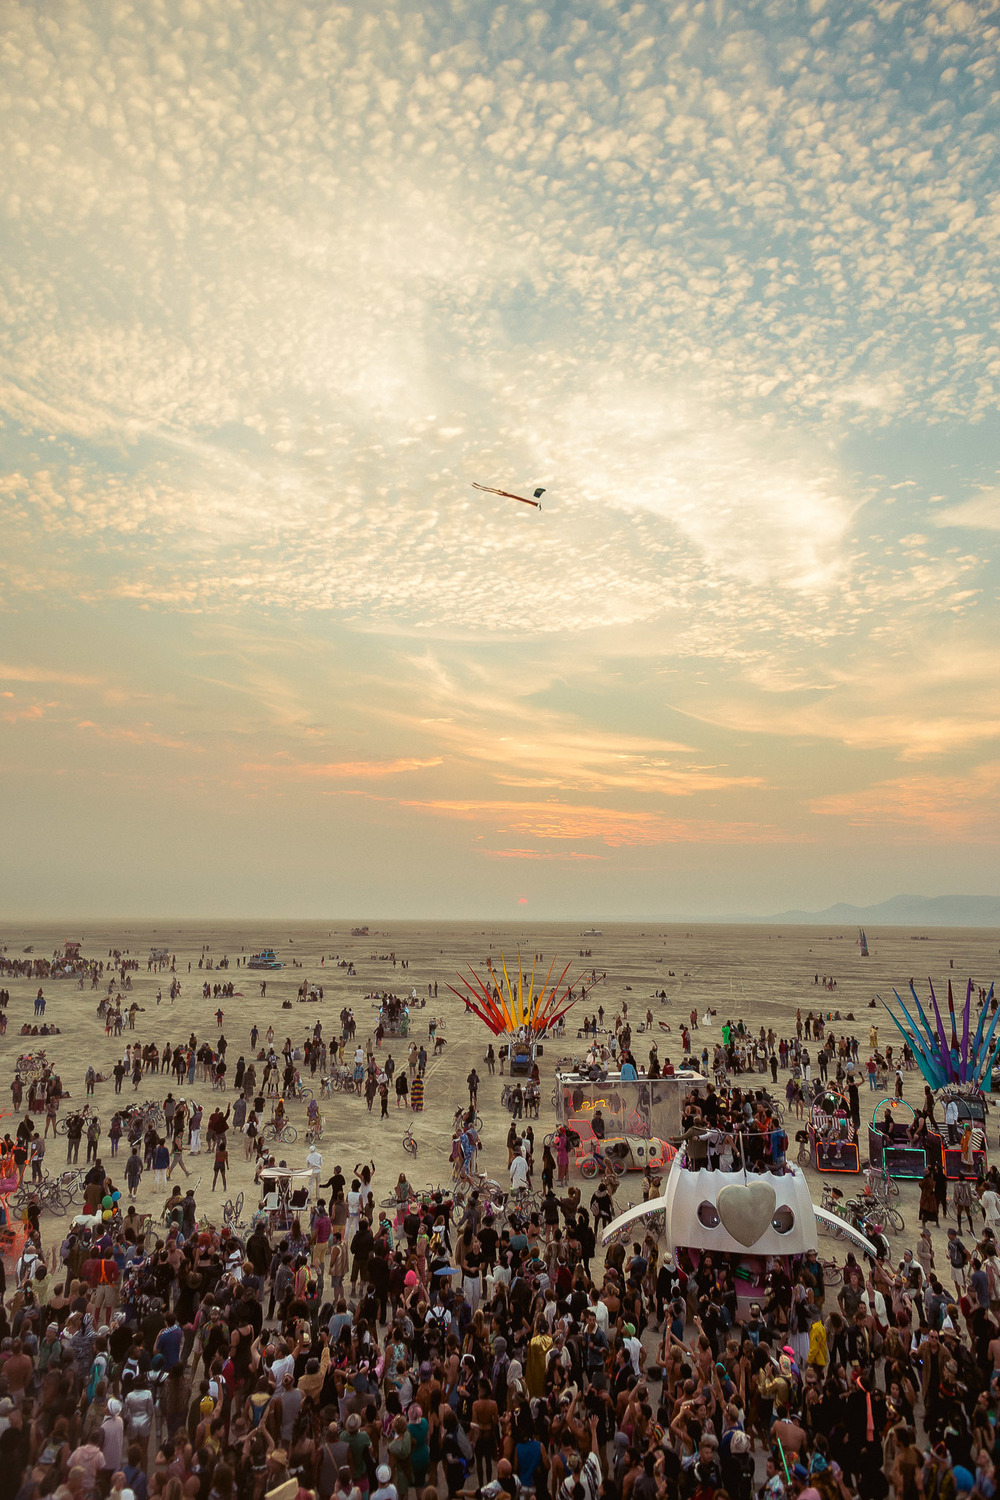 Burning_Man_2014_by_Cai_Griffin-78.jpg